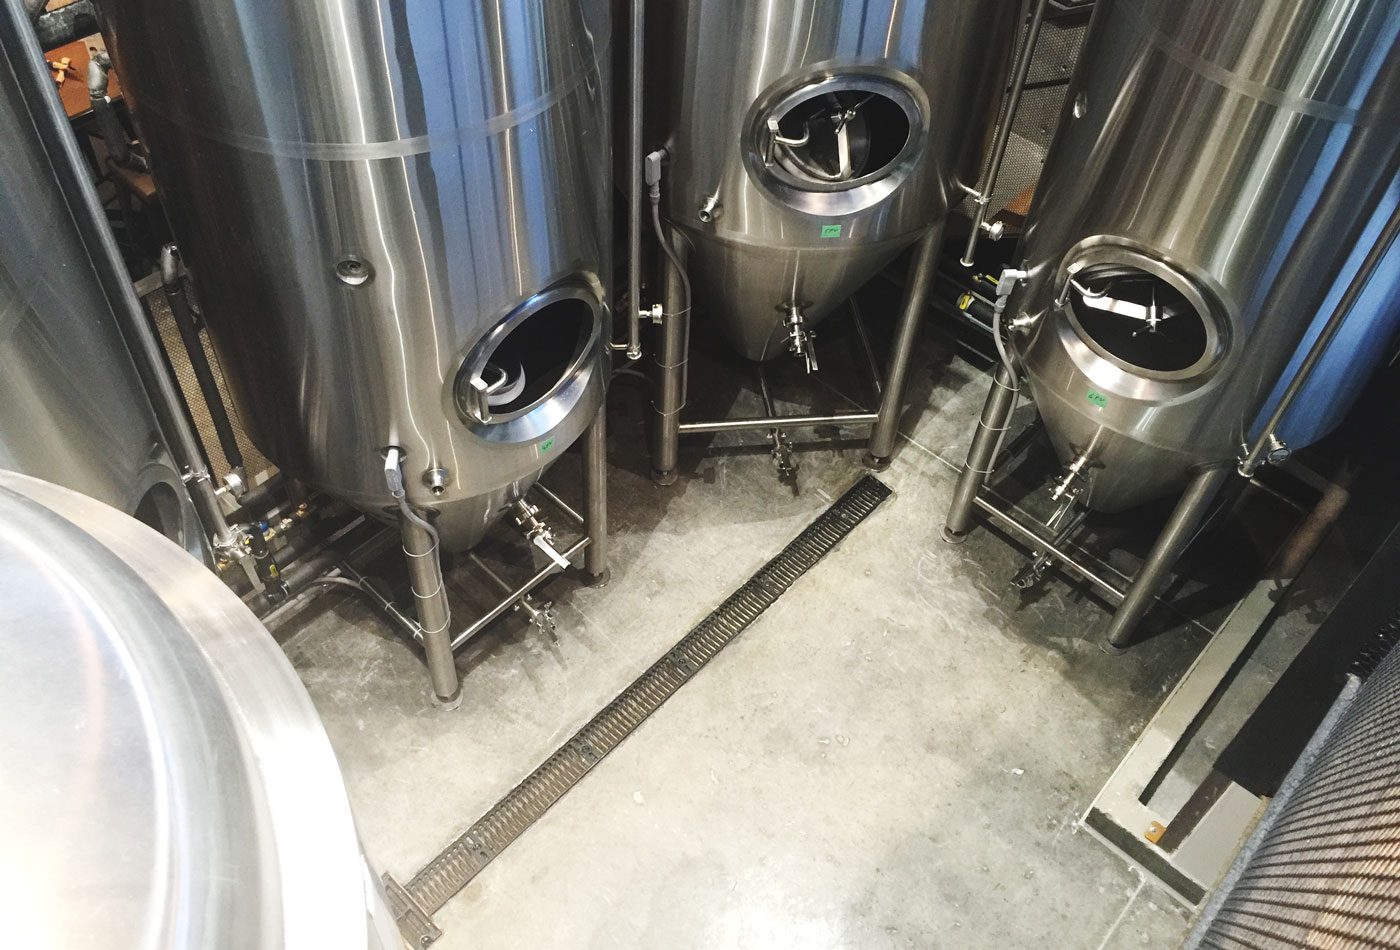 trolley-no-5-five-beer-brewery-fermenters